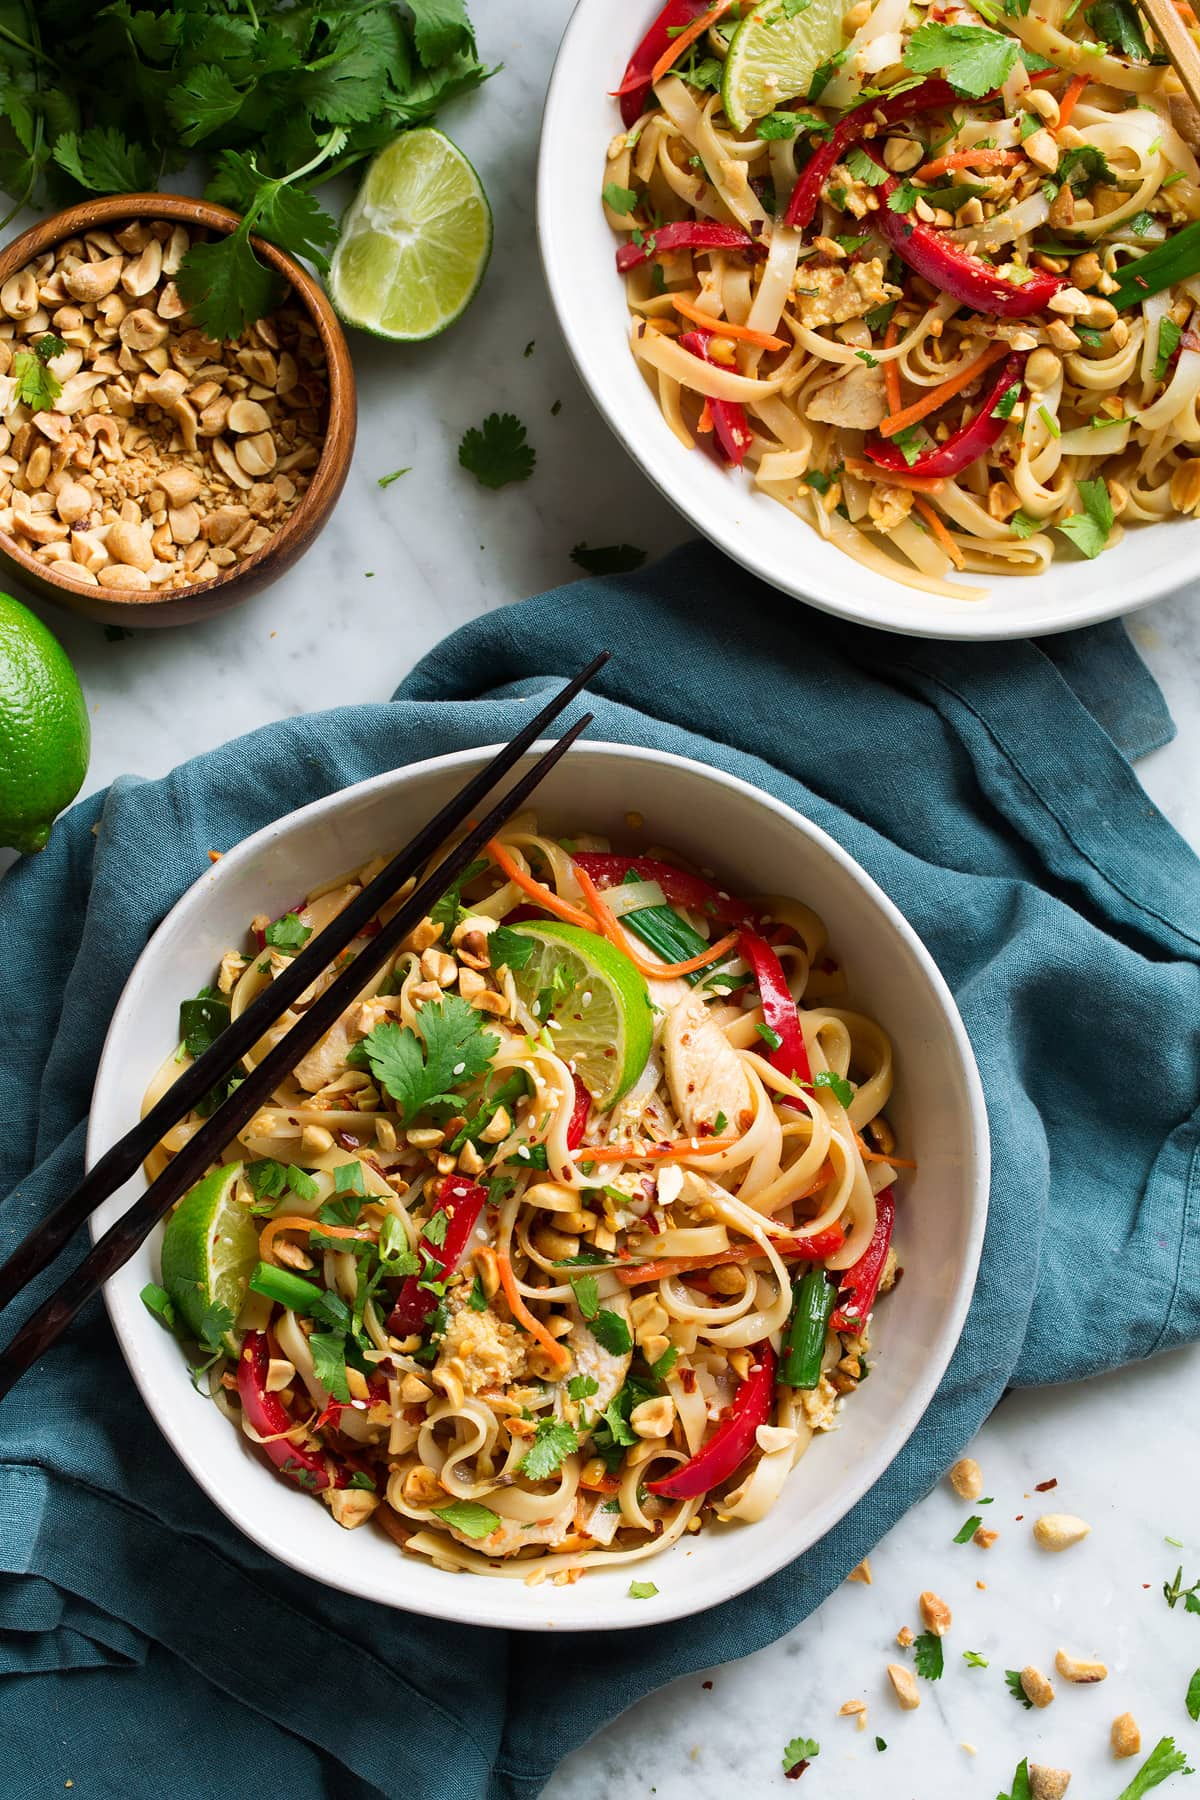 Two servings of pad thai in white bowls, with chopsticks on the side, set over a blue napkin.